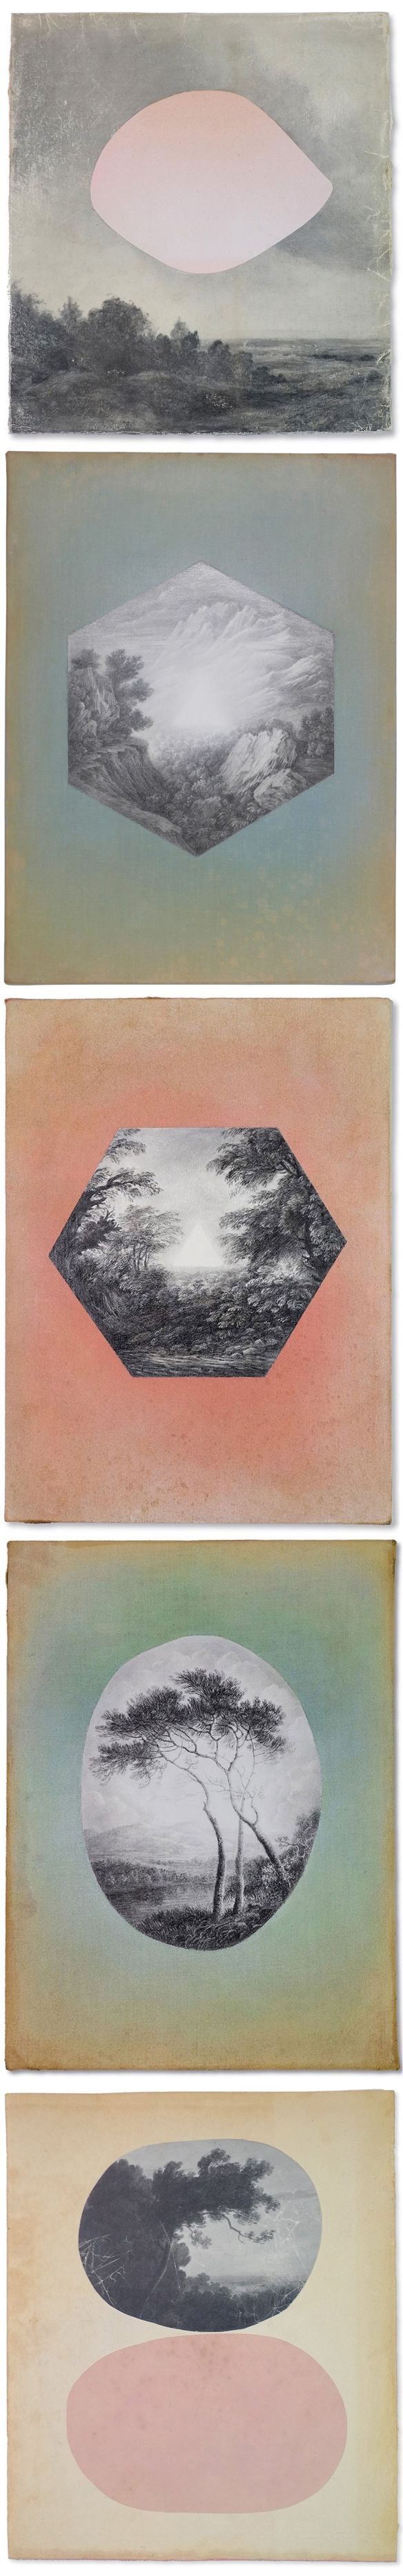 graphite and paint on found book covers <3 sue williams a'court